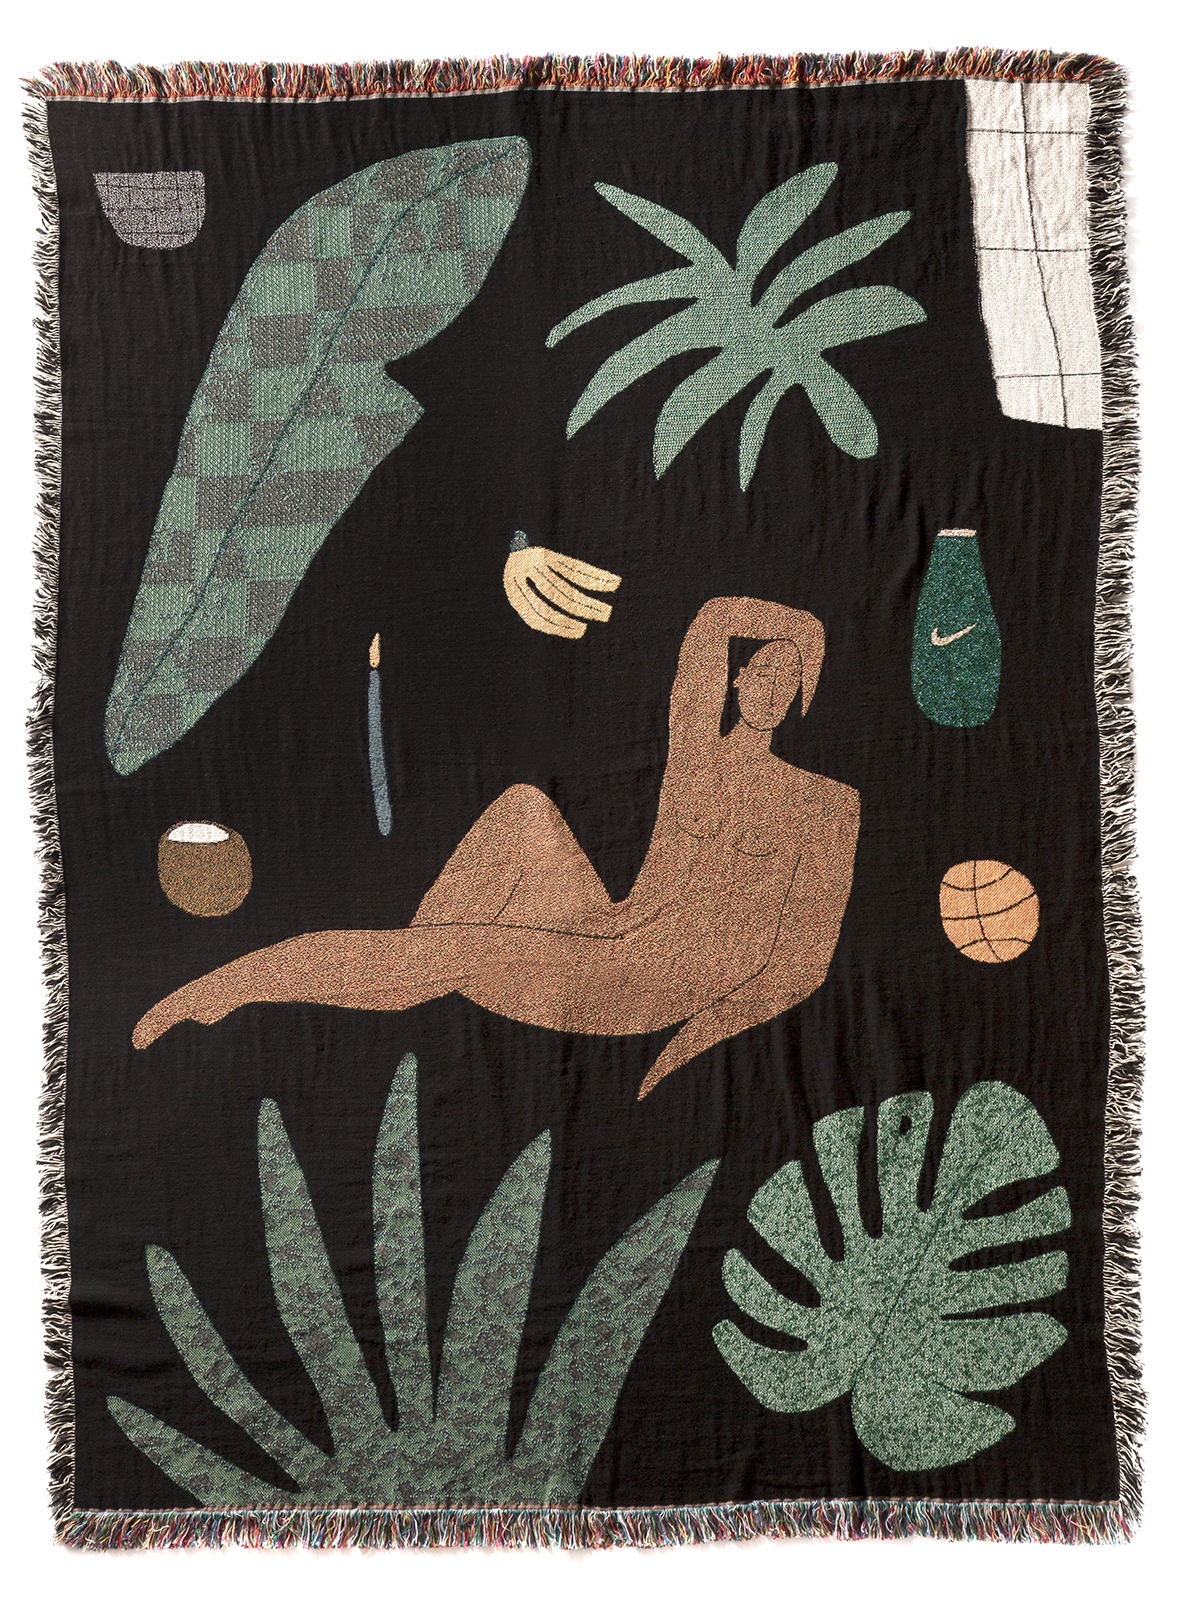 Tropical Shadows , woven blanket 71 x 53 inches.